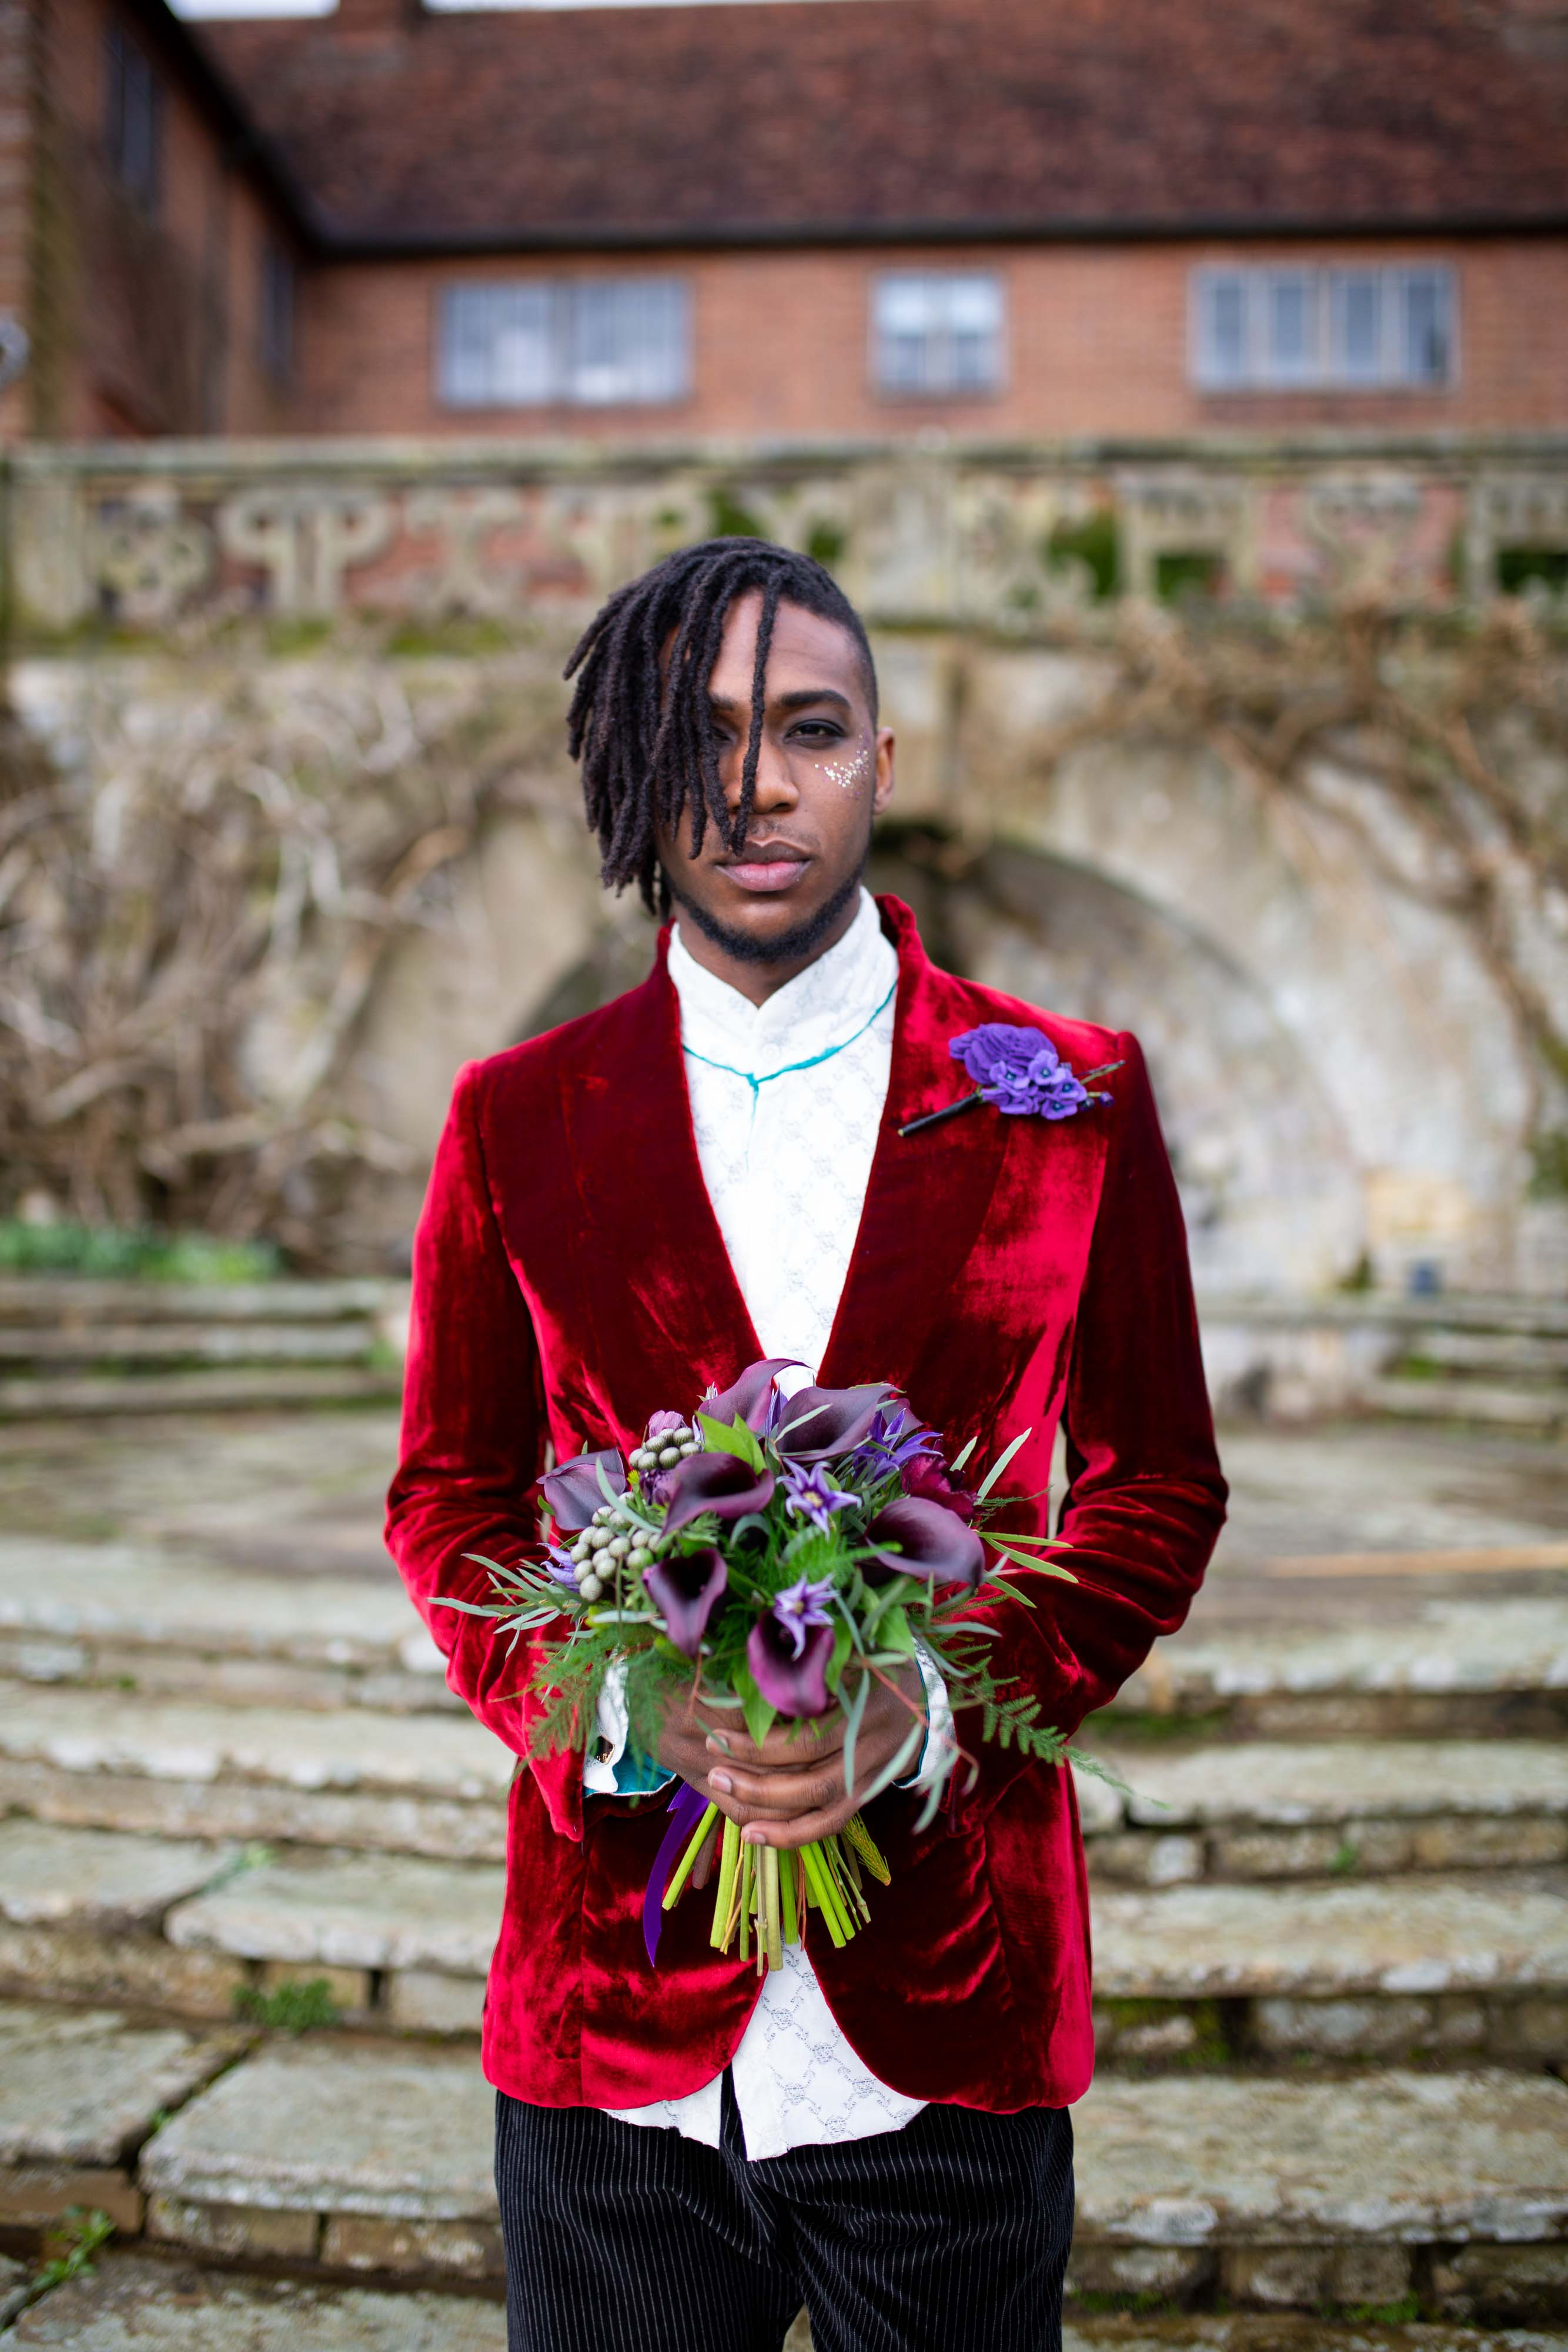 wedding menswear- alternative groomswear- music themed wedding- bake to the future- florence berry photography- prince inspired wedding look